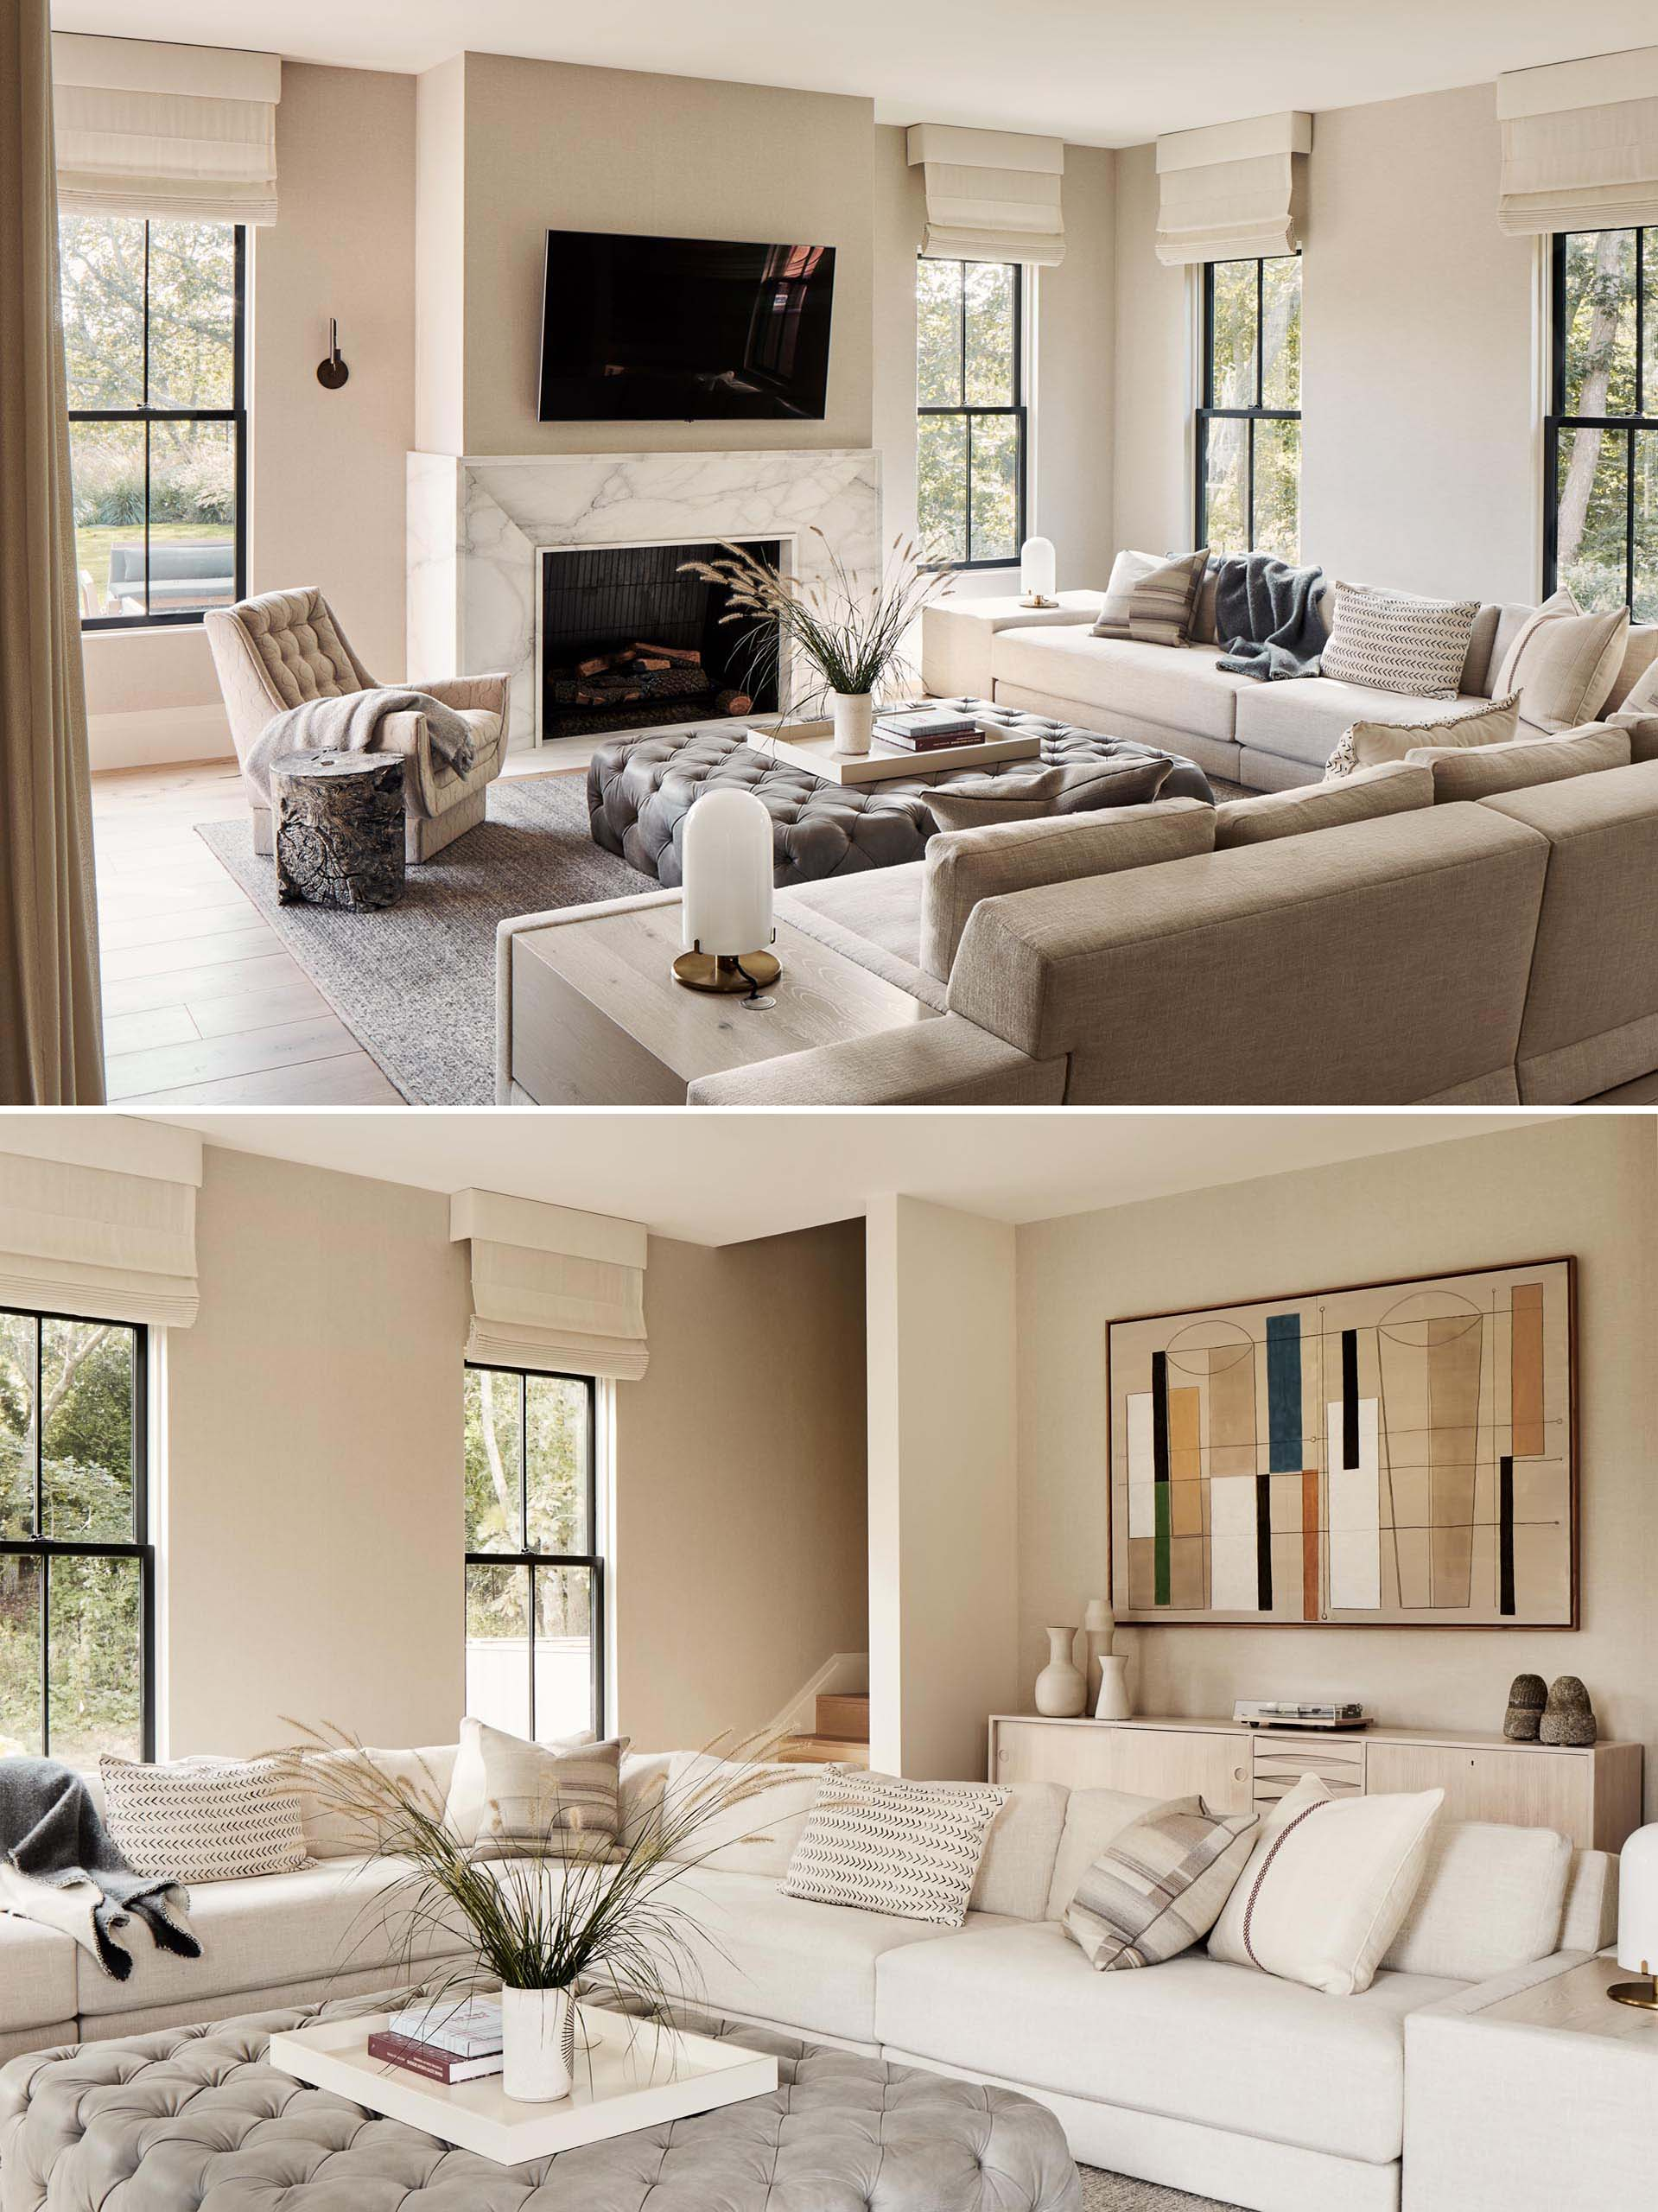 This family room with a neutral color palette includes a fireplace and an L-shaped couch for comfortable movie nights.